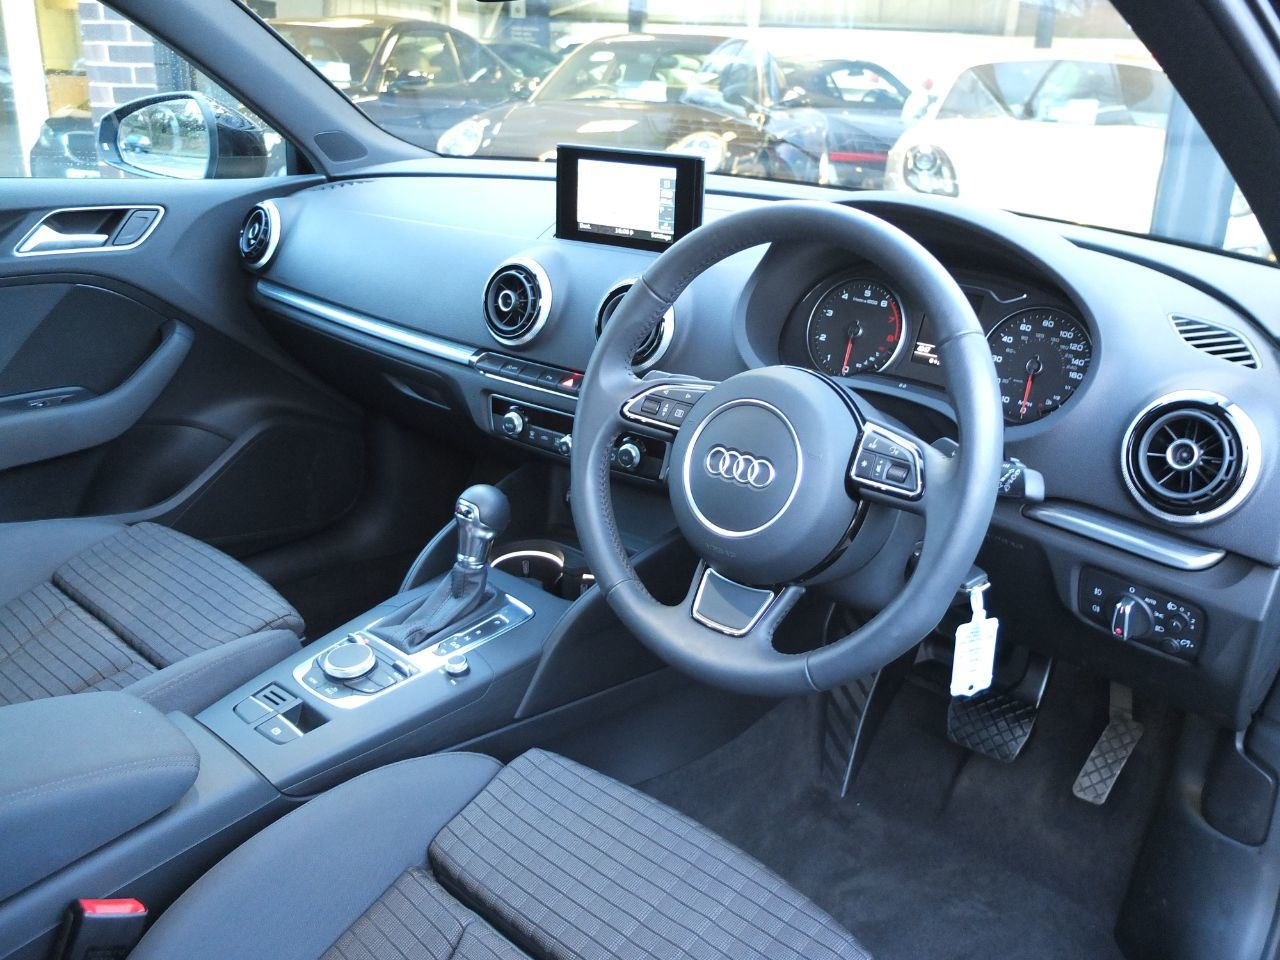 Audi A3 1.4 TFSI Sport 140 ps 3dr S Tronic Cylinder on Demand ++Spec Hatchback Petrol Brilliant Black